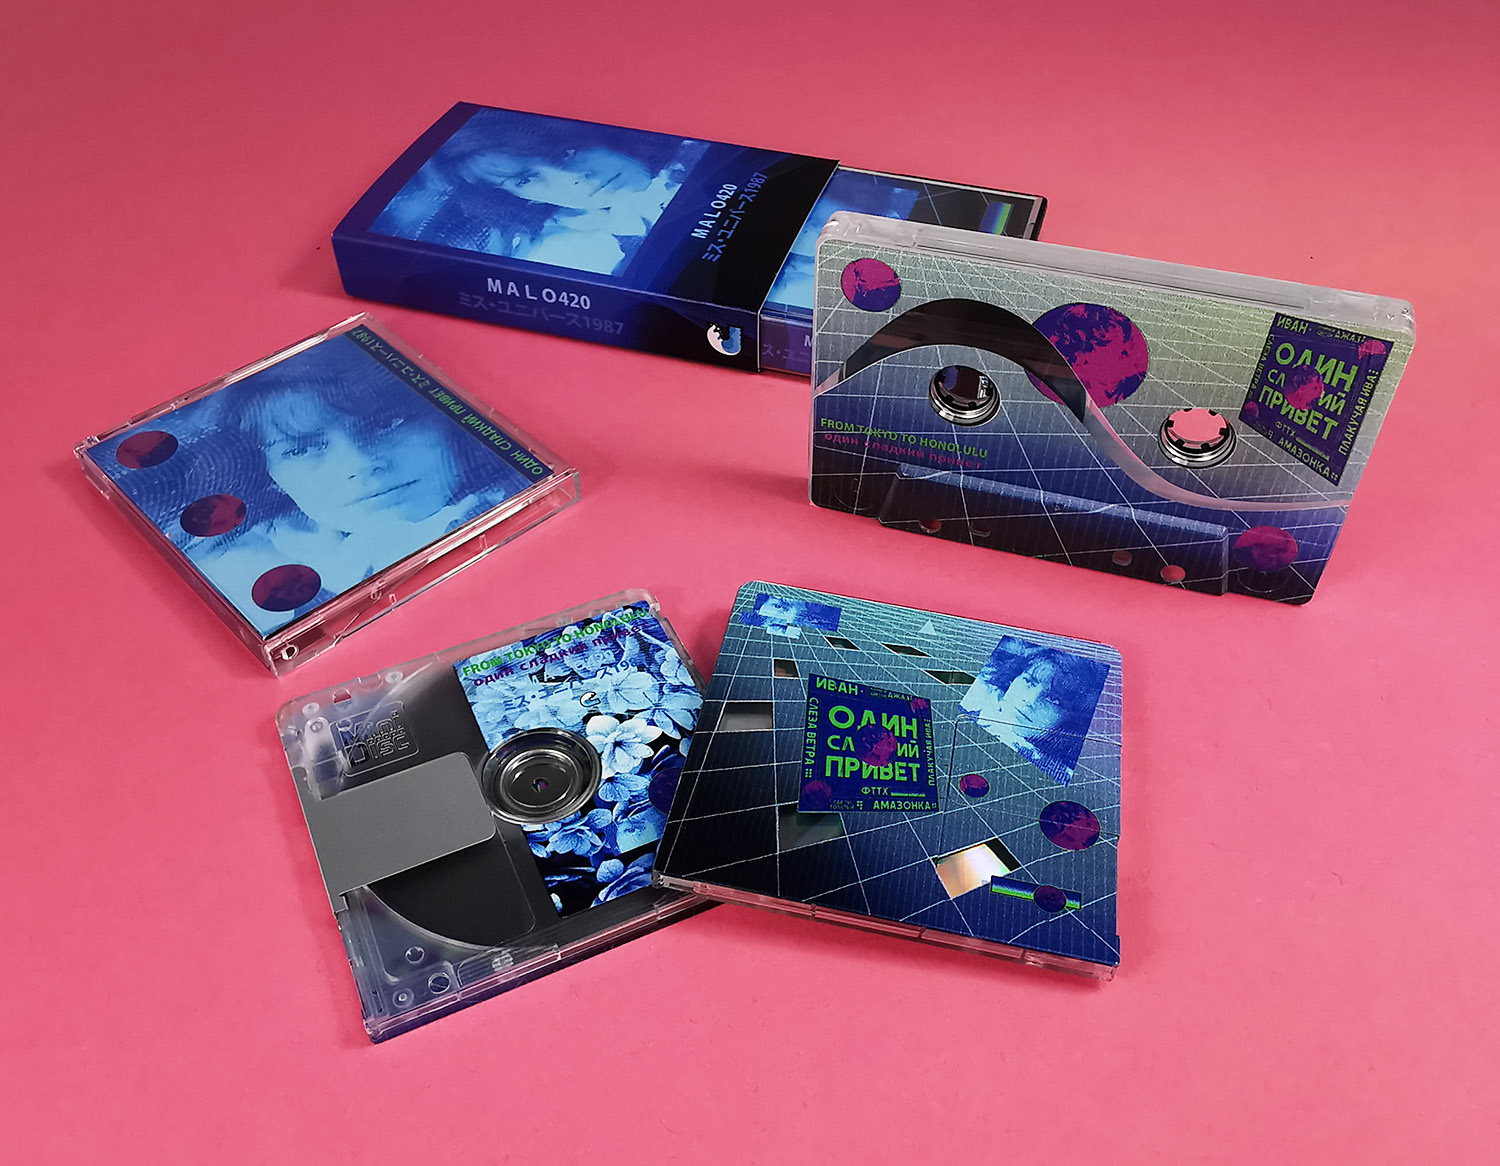 Matching cassette tape and MiniDisc set with partial reveals of the clear tapes and MiniDiscs underneath